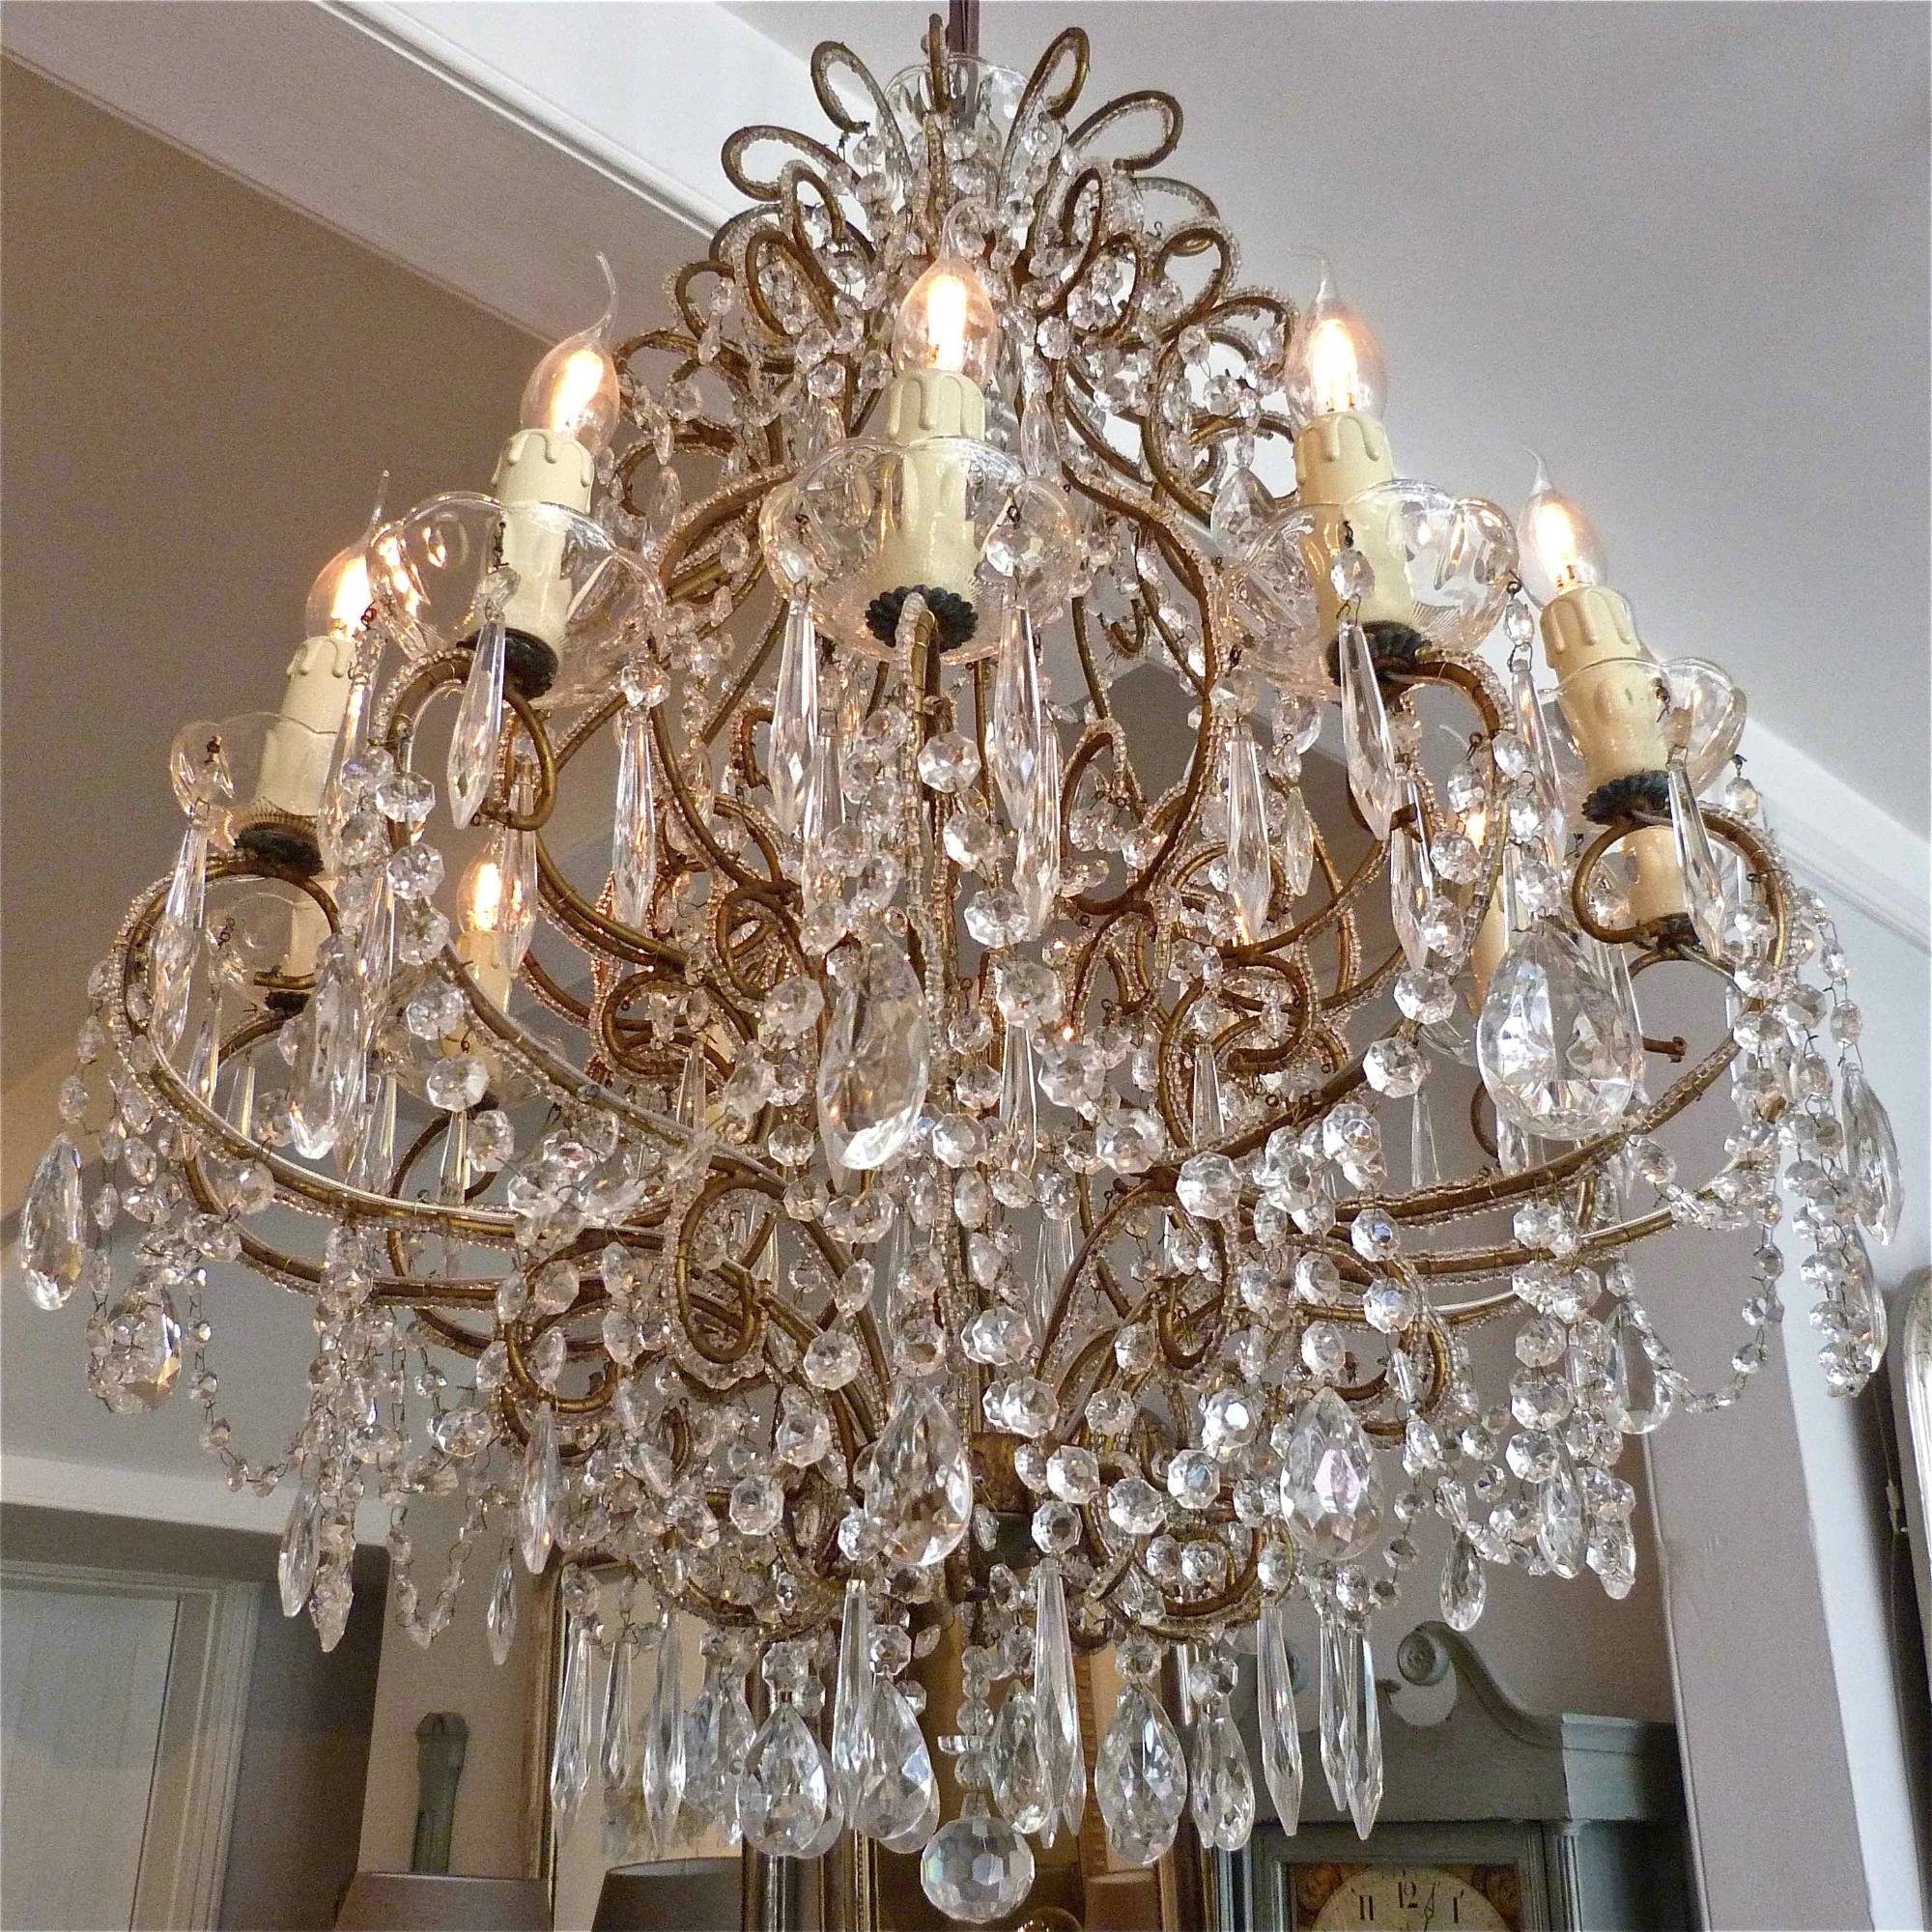 Pair Of Italian Chandeliers Trendfirst Pertaining To Italian Chandeliers (Image 12 of 15)